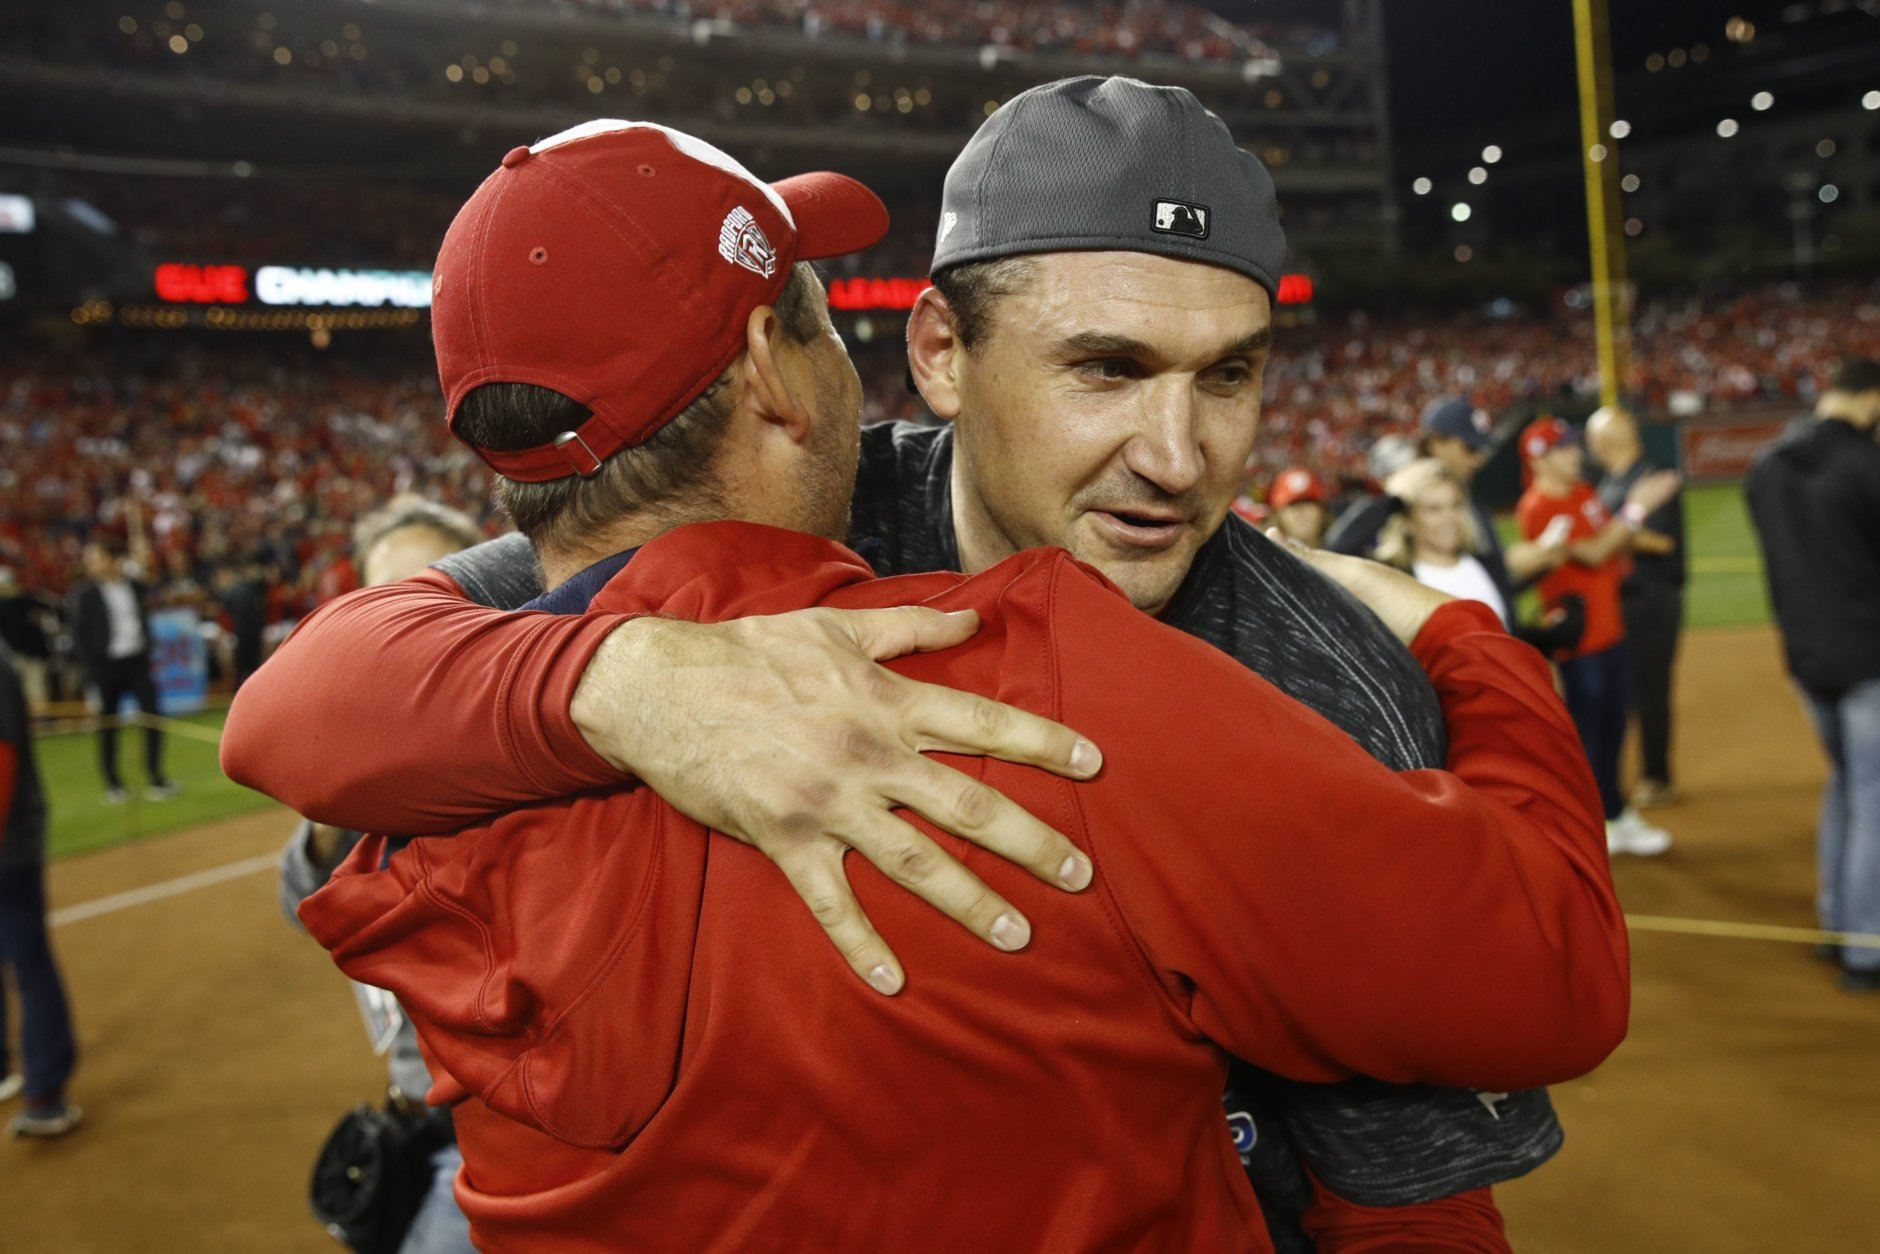 Washington Nationals manager Dave Martinez and Ryan Zimmerman celebrate after Game 4 of the baseball National League Championship Series against the St. Louis Cardinals Tuesday, Oct. 15, 2019, in Washington. The Nationals won 7-4 to win the series 4-0. (AP Photo/Patrick Semansky)